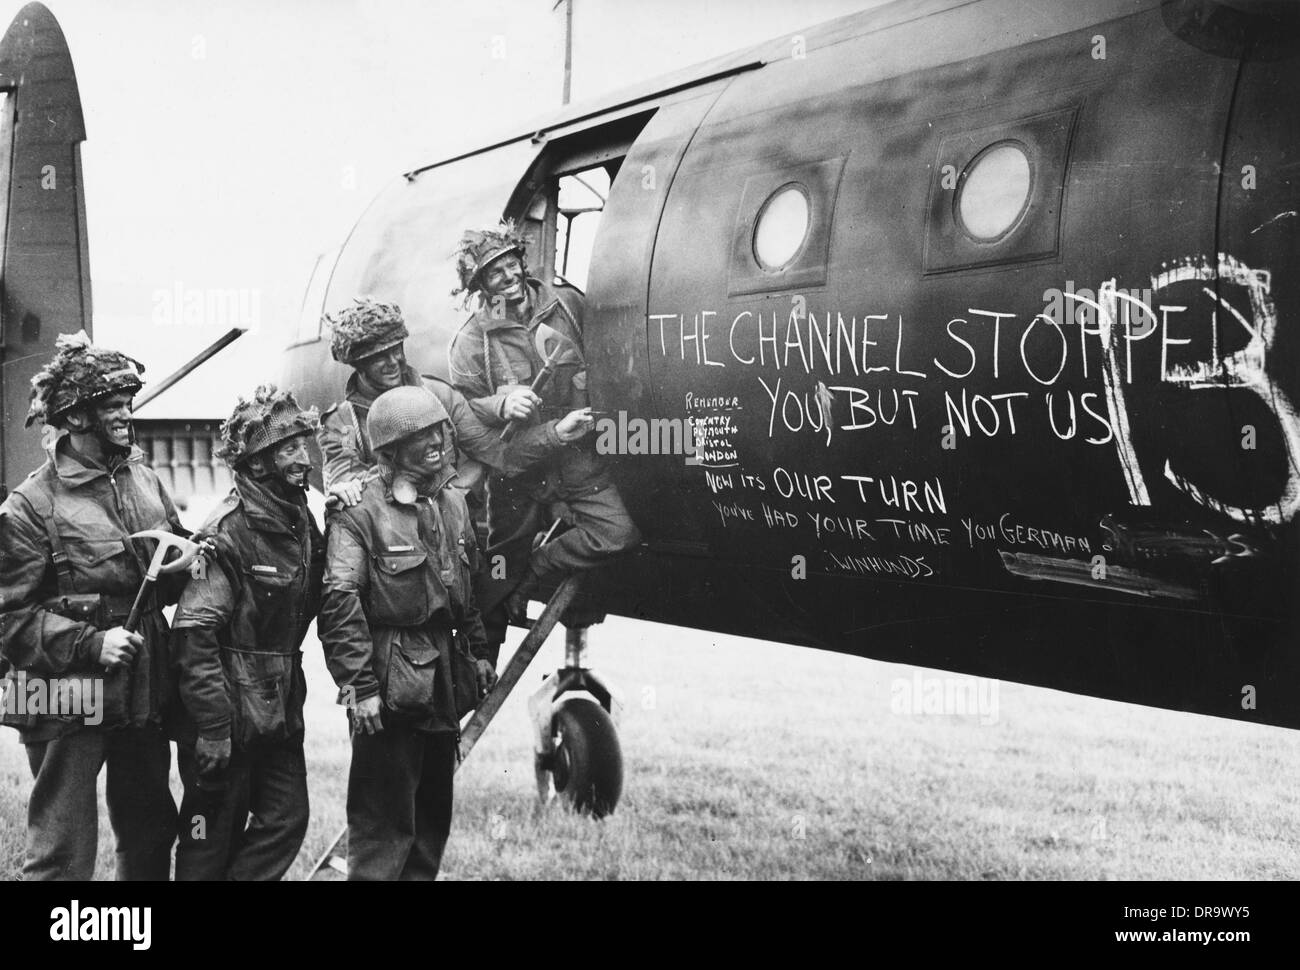 D-Day - Glider reinforcement team - Stock Image